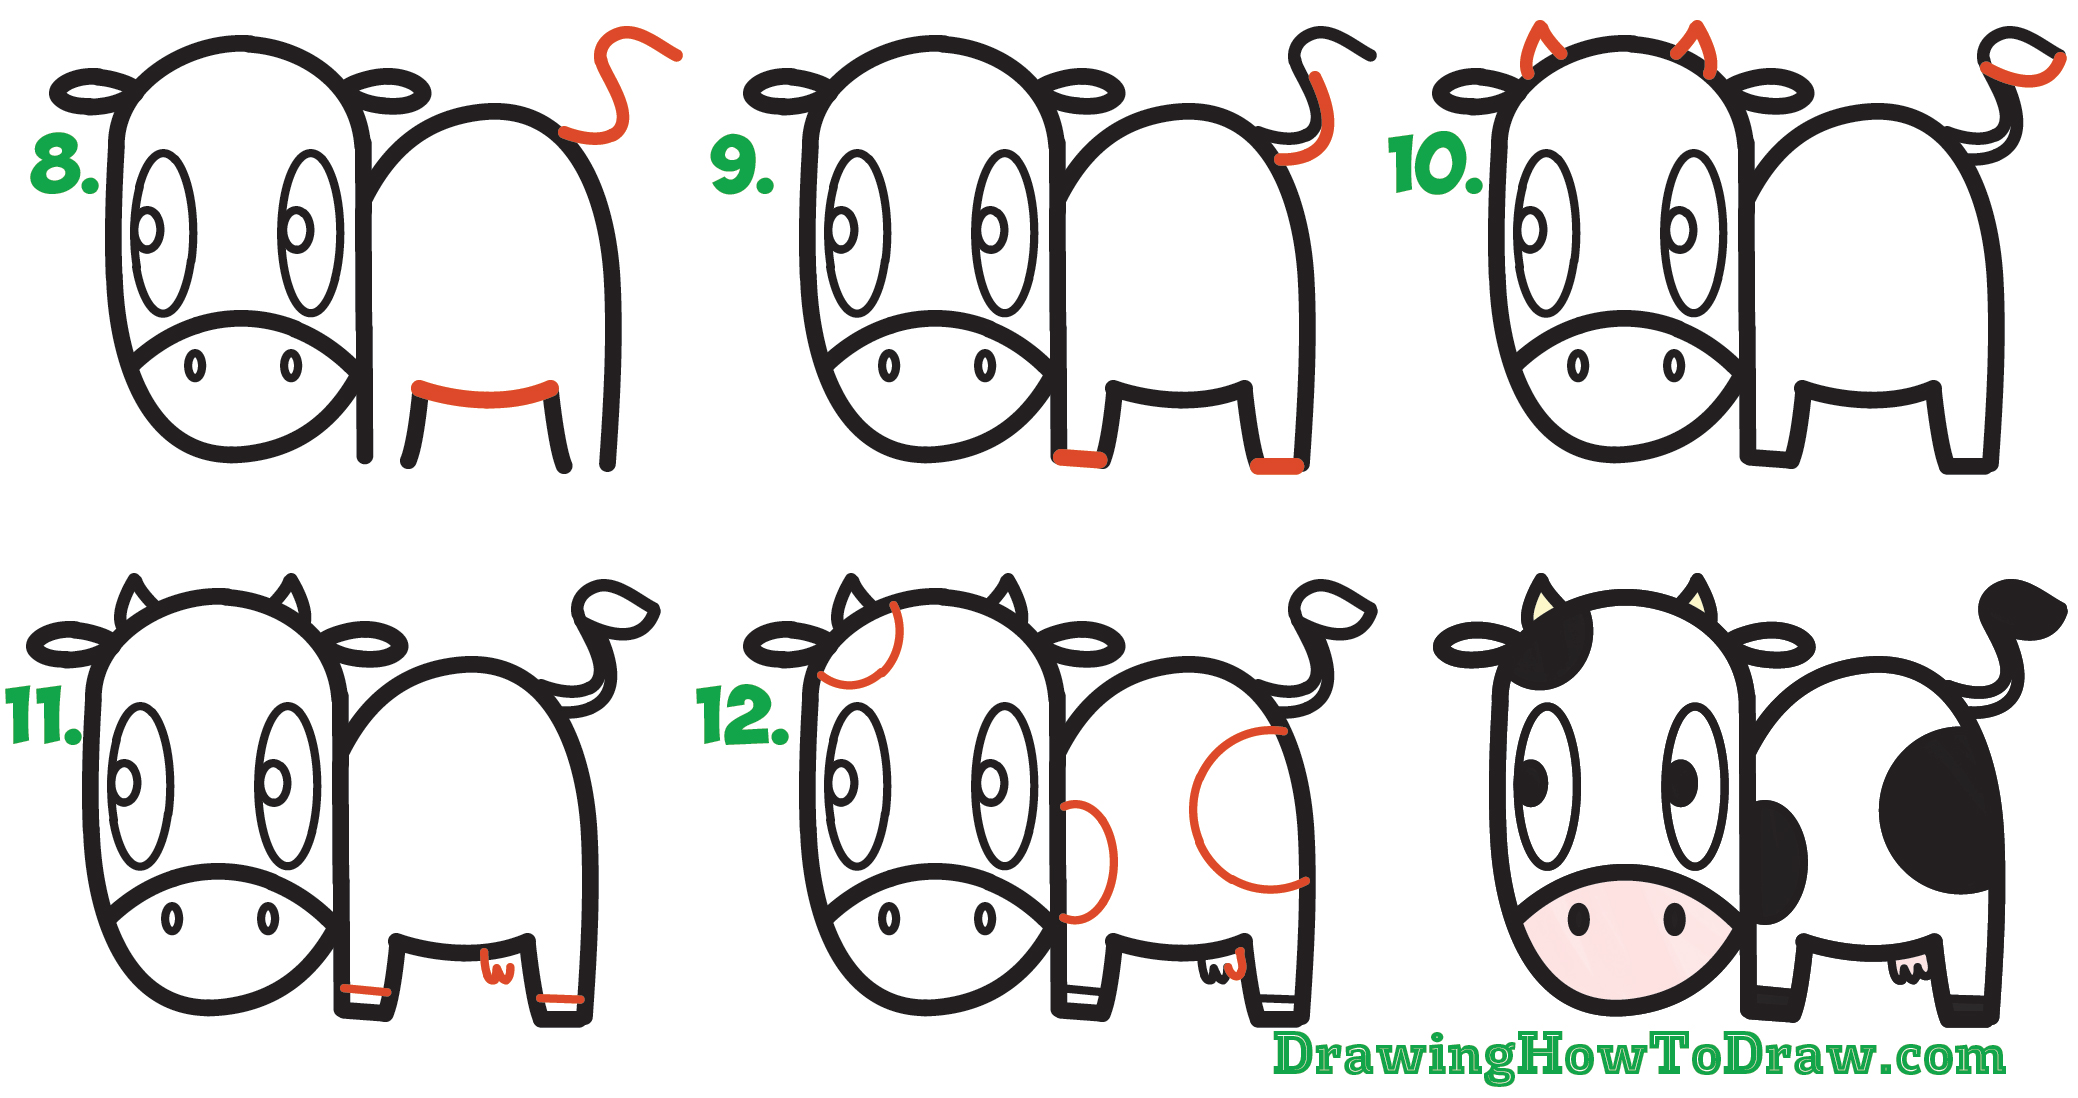 9 Easy Steps to Learn Drawing - Fine Art Tips